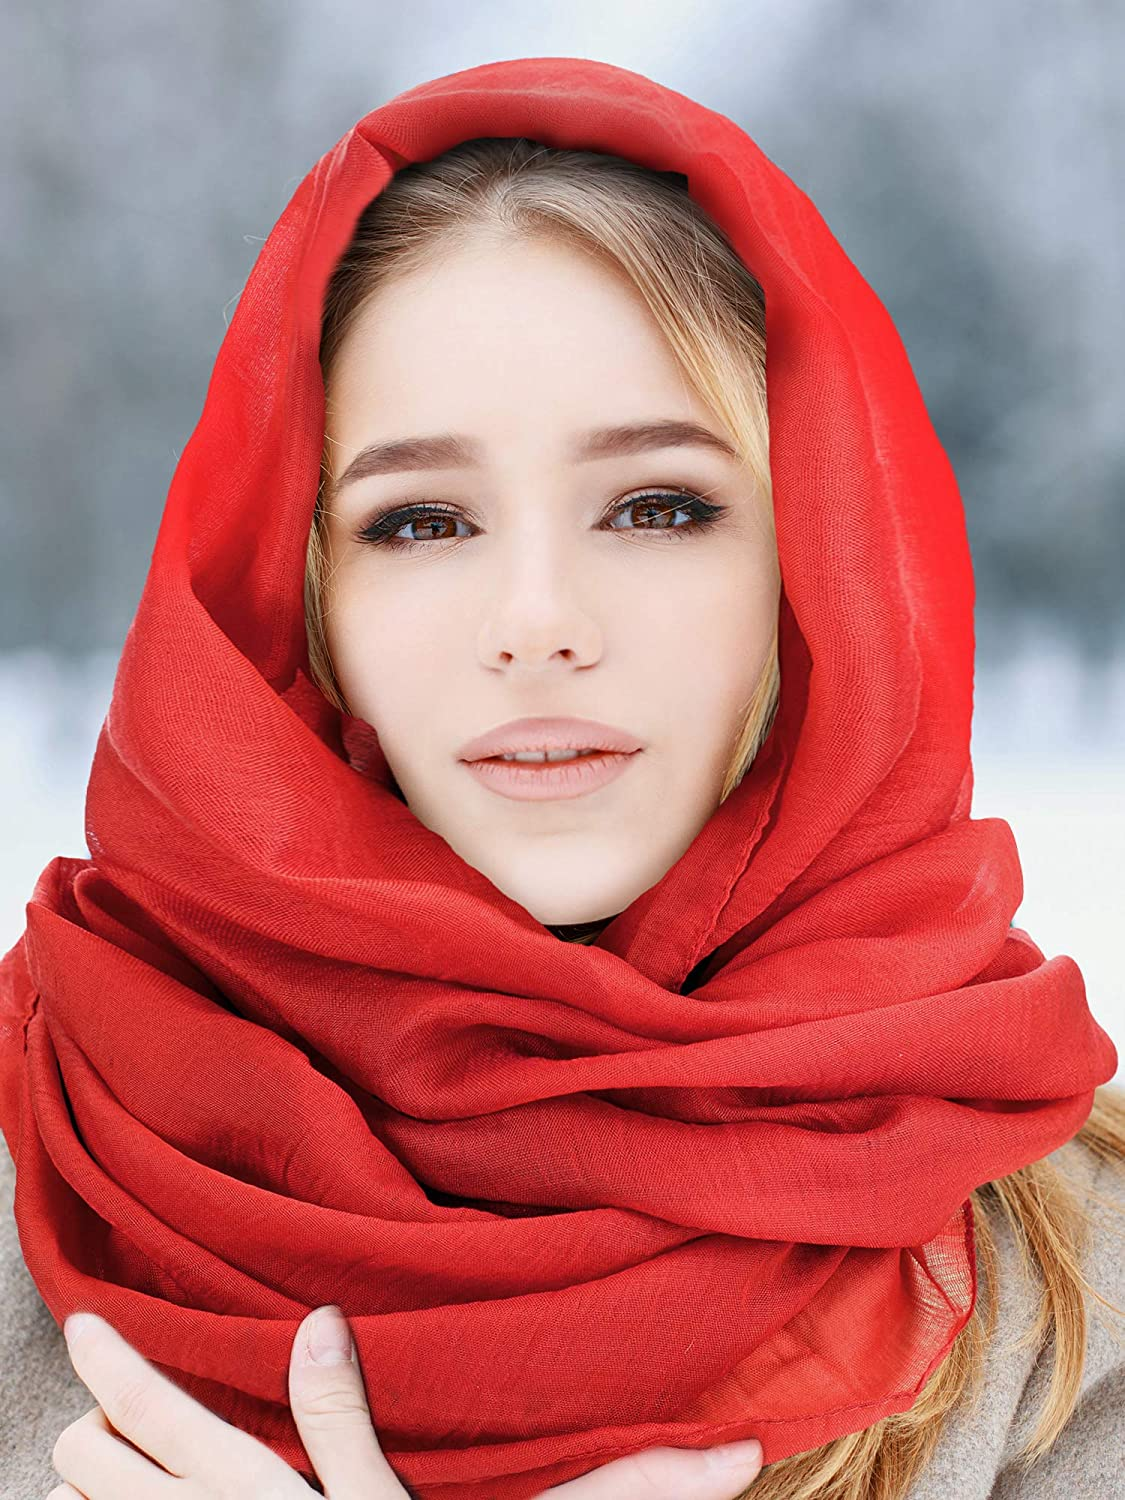 Women Cotton Scarf Lady Light Soft Solid Scarf Wrap Large Sheer Shawl Wraps for Adult Kids Using